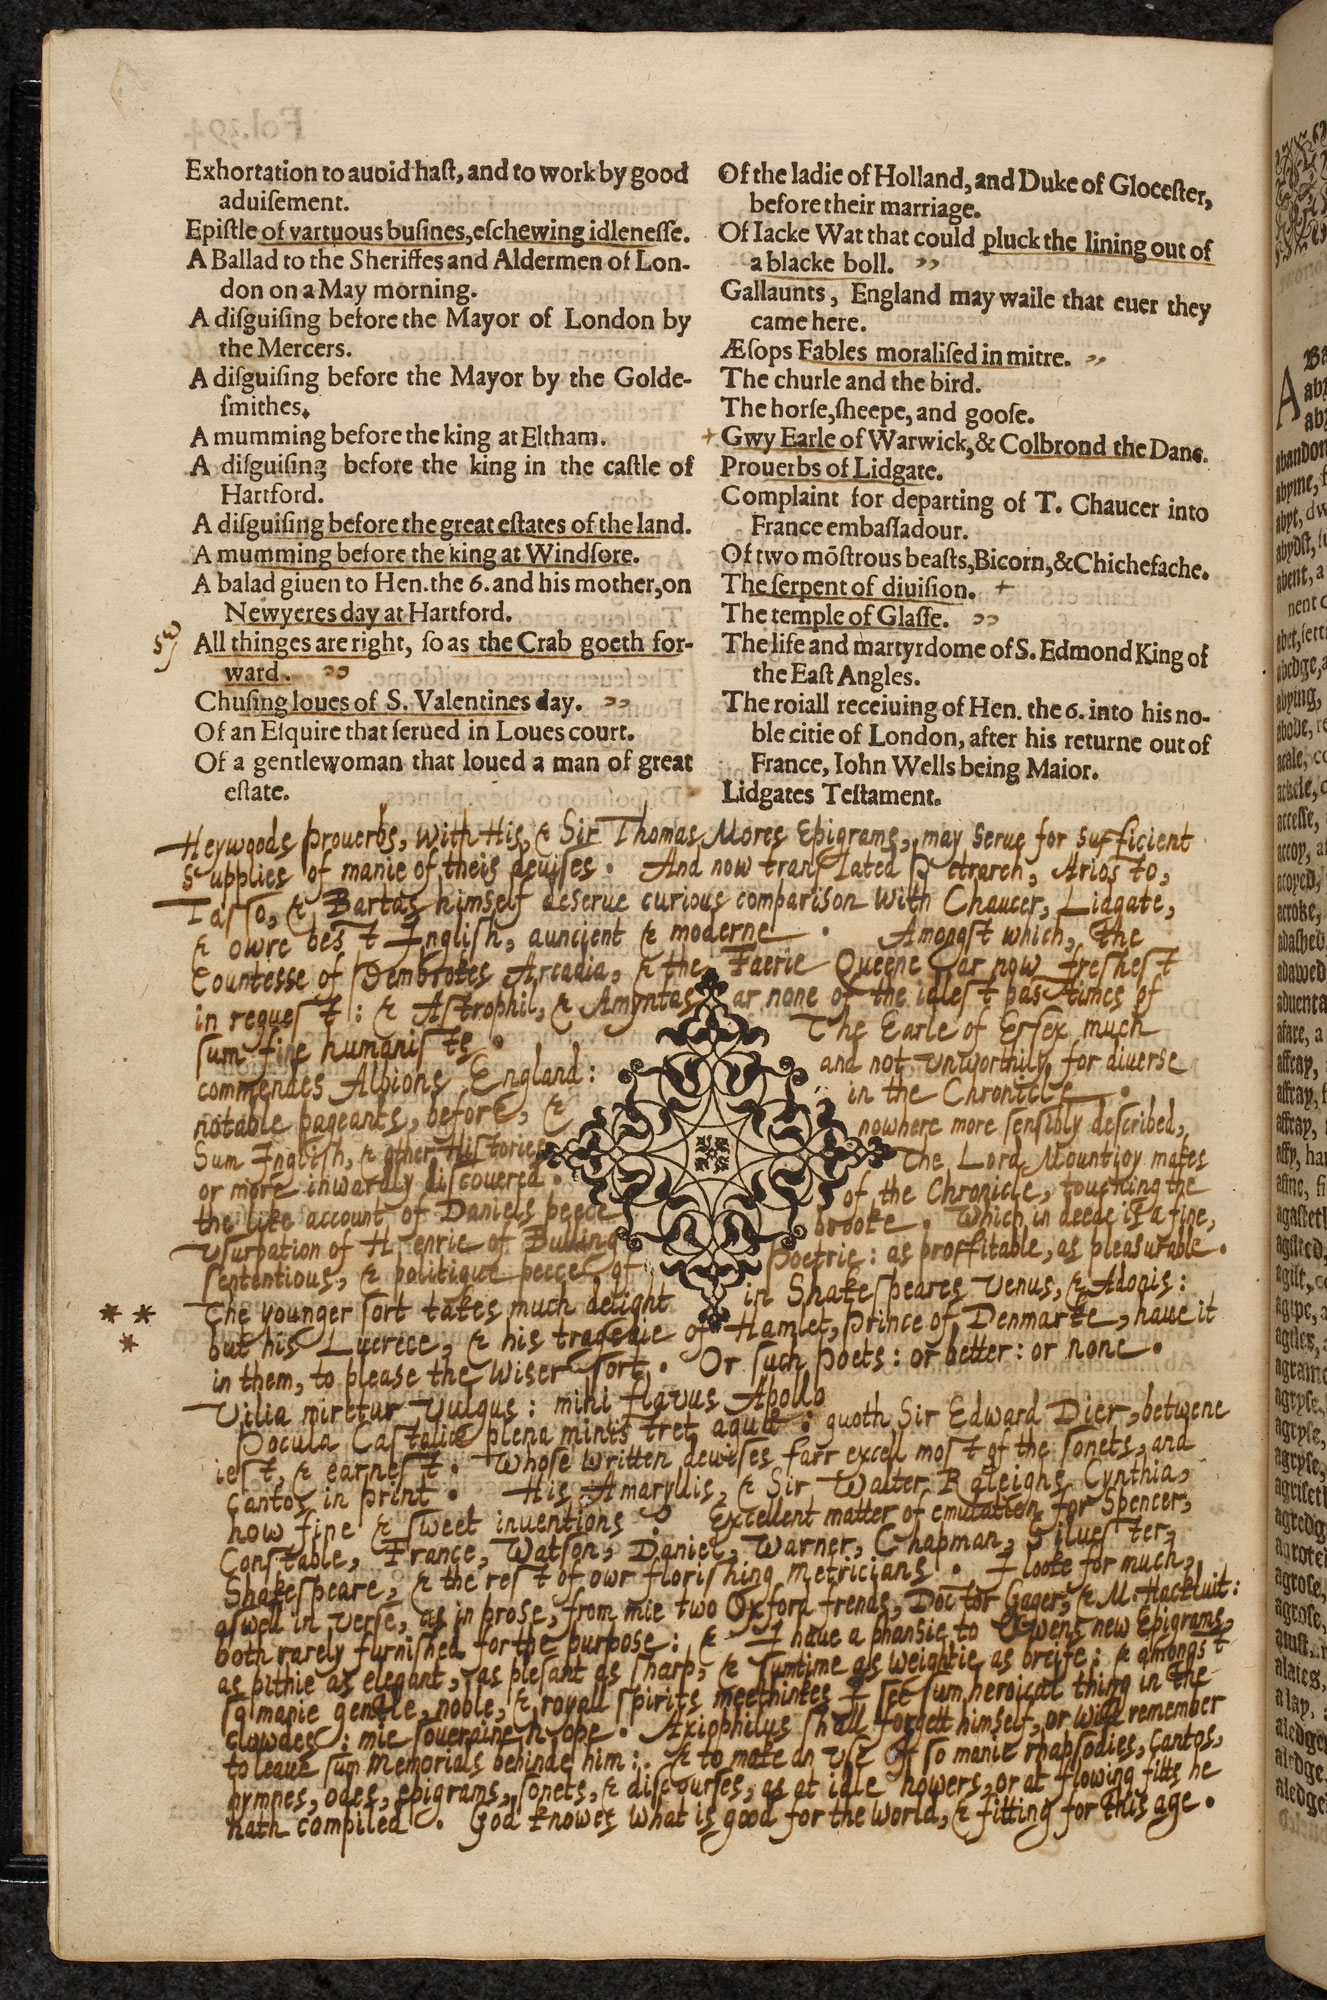 Earliest known reference to Shakespeare's Hamlet